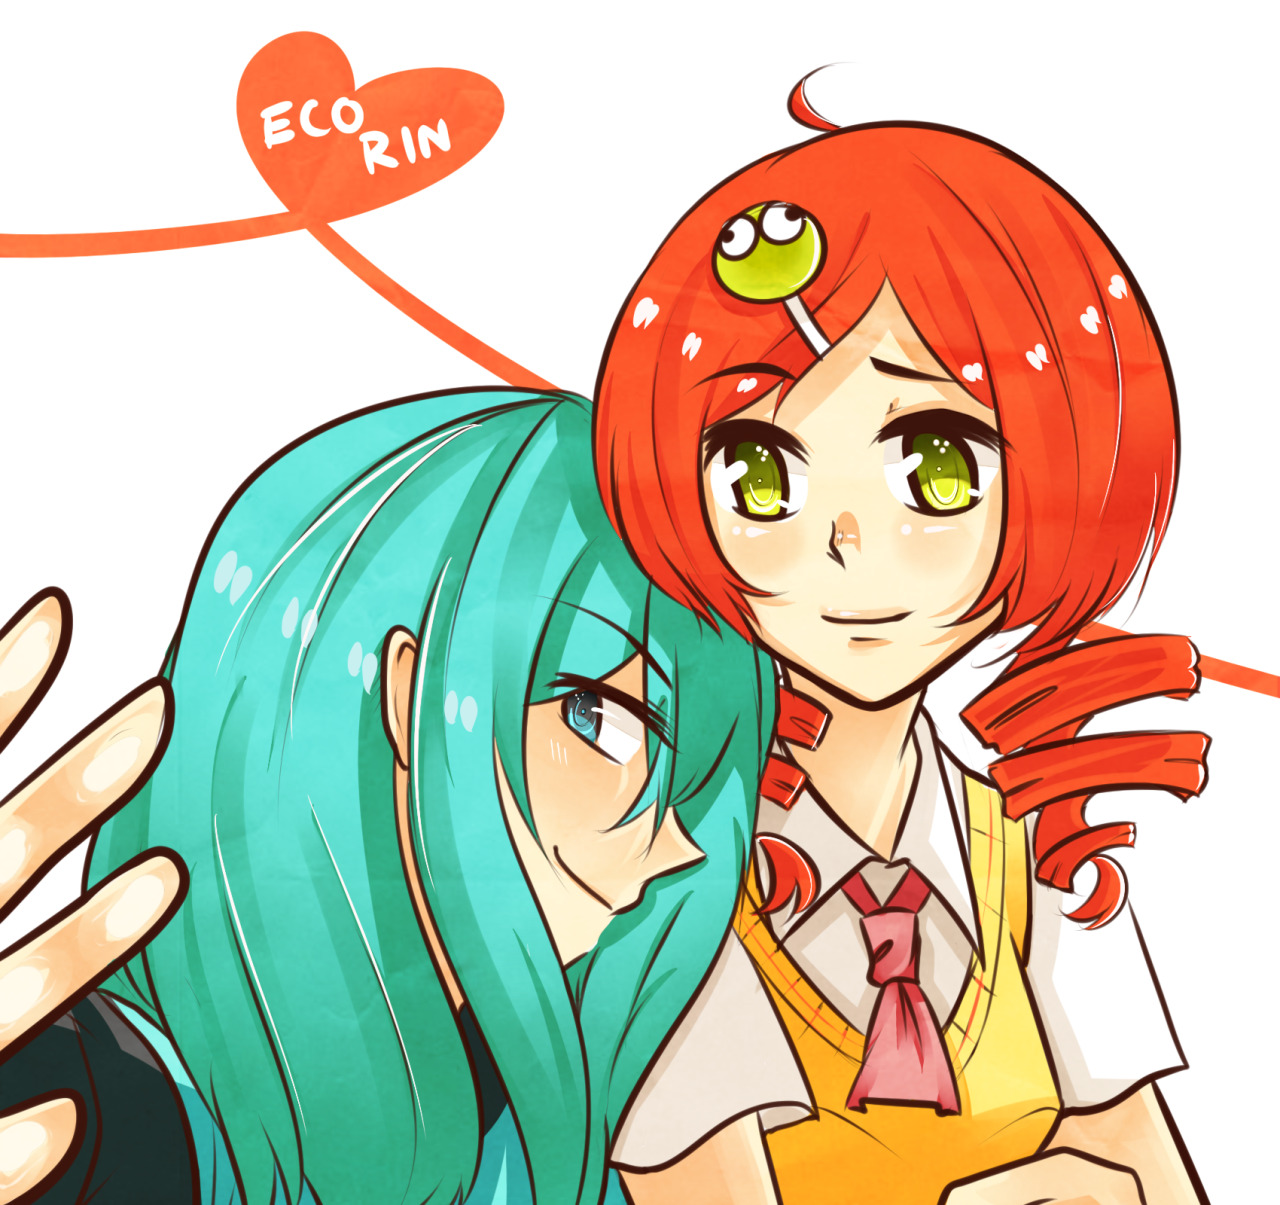 mishadraws:  EcoRin for Kei ^ q ^/// SHE DESERVES ALL THE ECORIN IN THE WORLD !!!!!!!!!!!!!!!  aldksldkslksdl criesssss Sometimes I wonder why we both lives so far away overseas alkdslkslfkdlfdlkglkf Is there anyone else who loves Ecorin more than meXD Actually I'll be kina happy if there isXDD